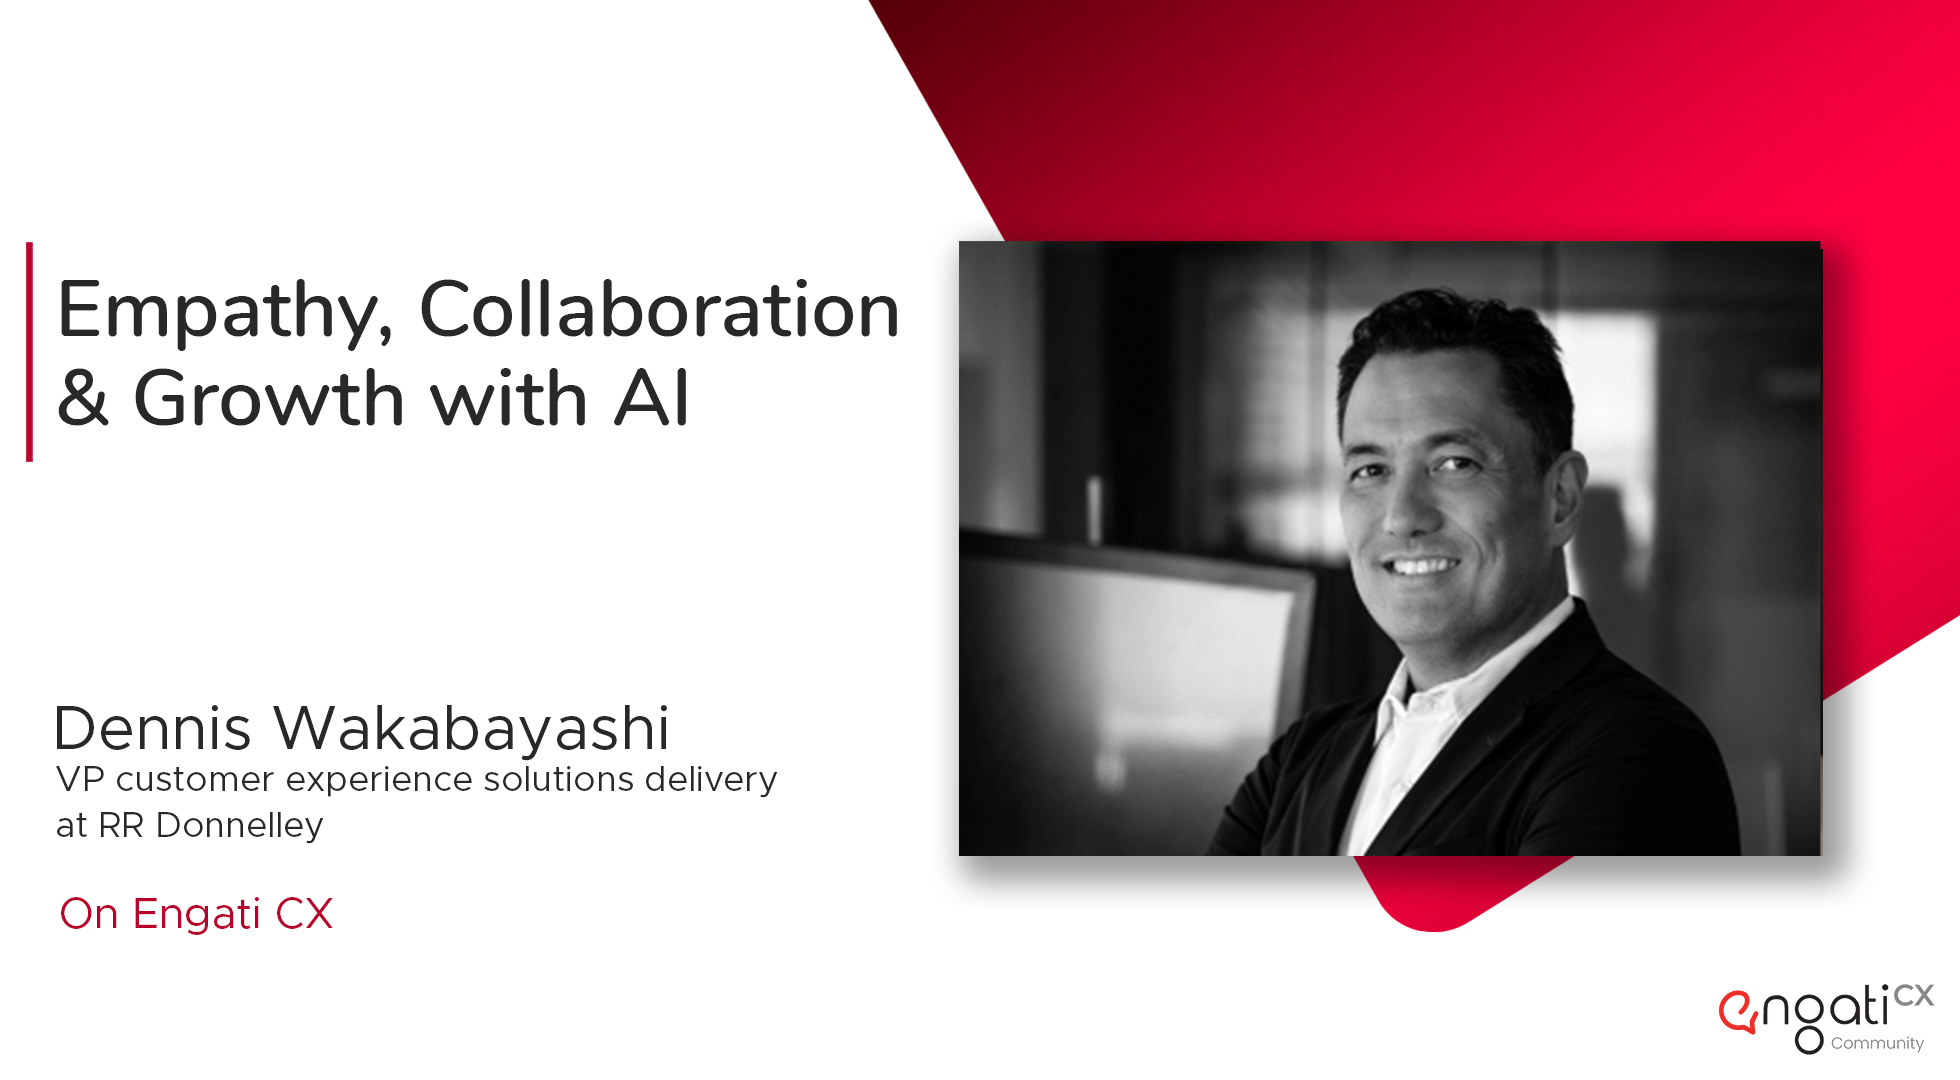 Empathy, collaboration & growth with AI | Dennis Wakabayashi | Engati CX